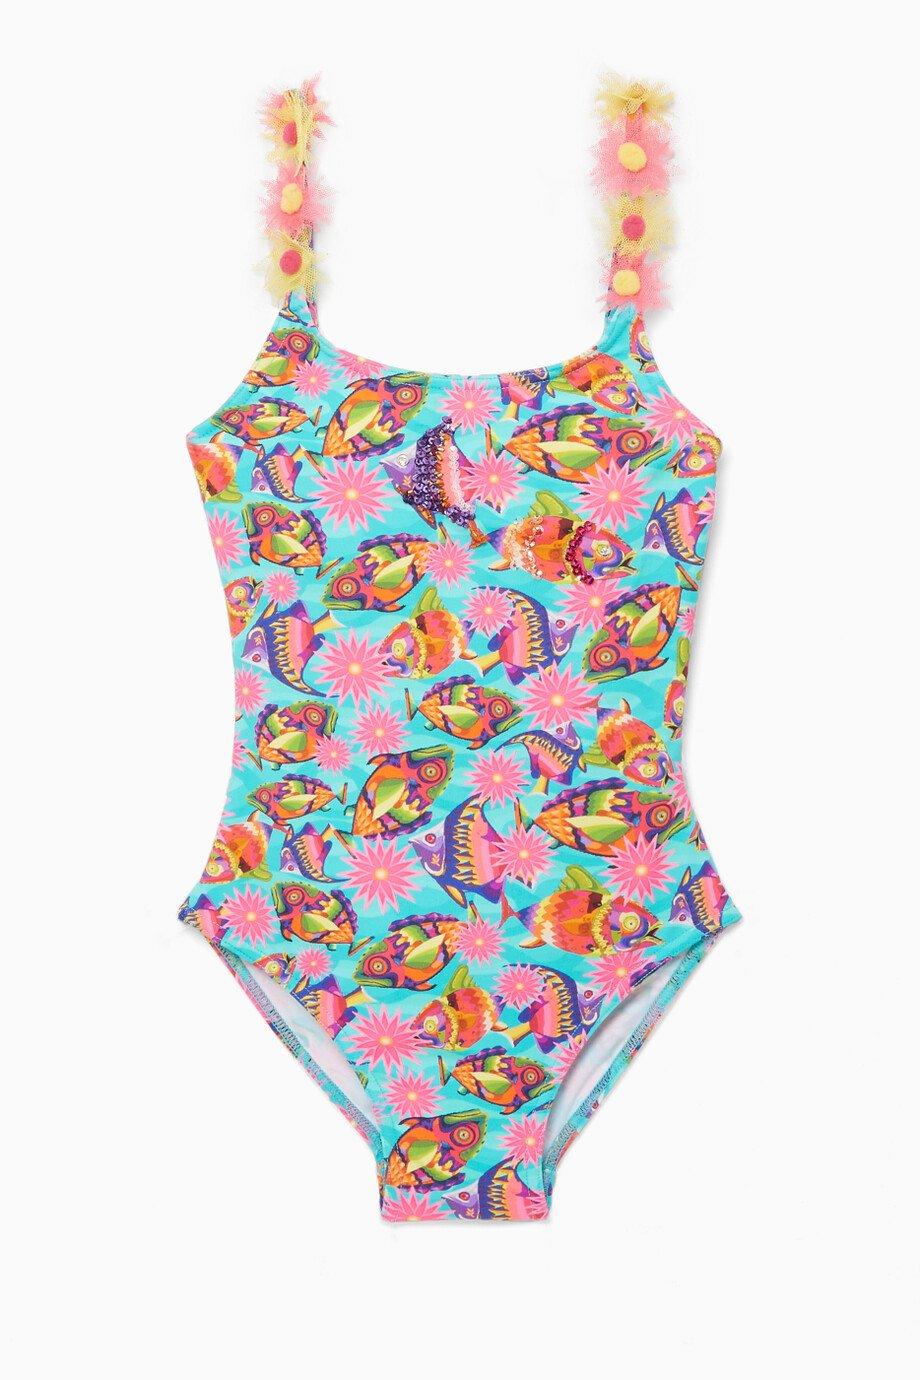 358eec5a12125 Shop Selini Action Multicolour Fish-Printed Embellished Swimsuit for ...